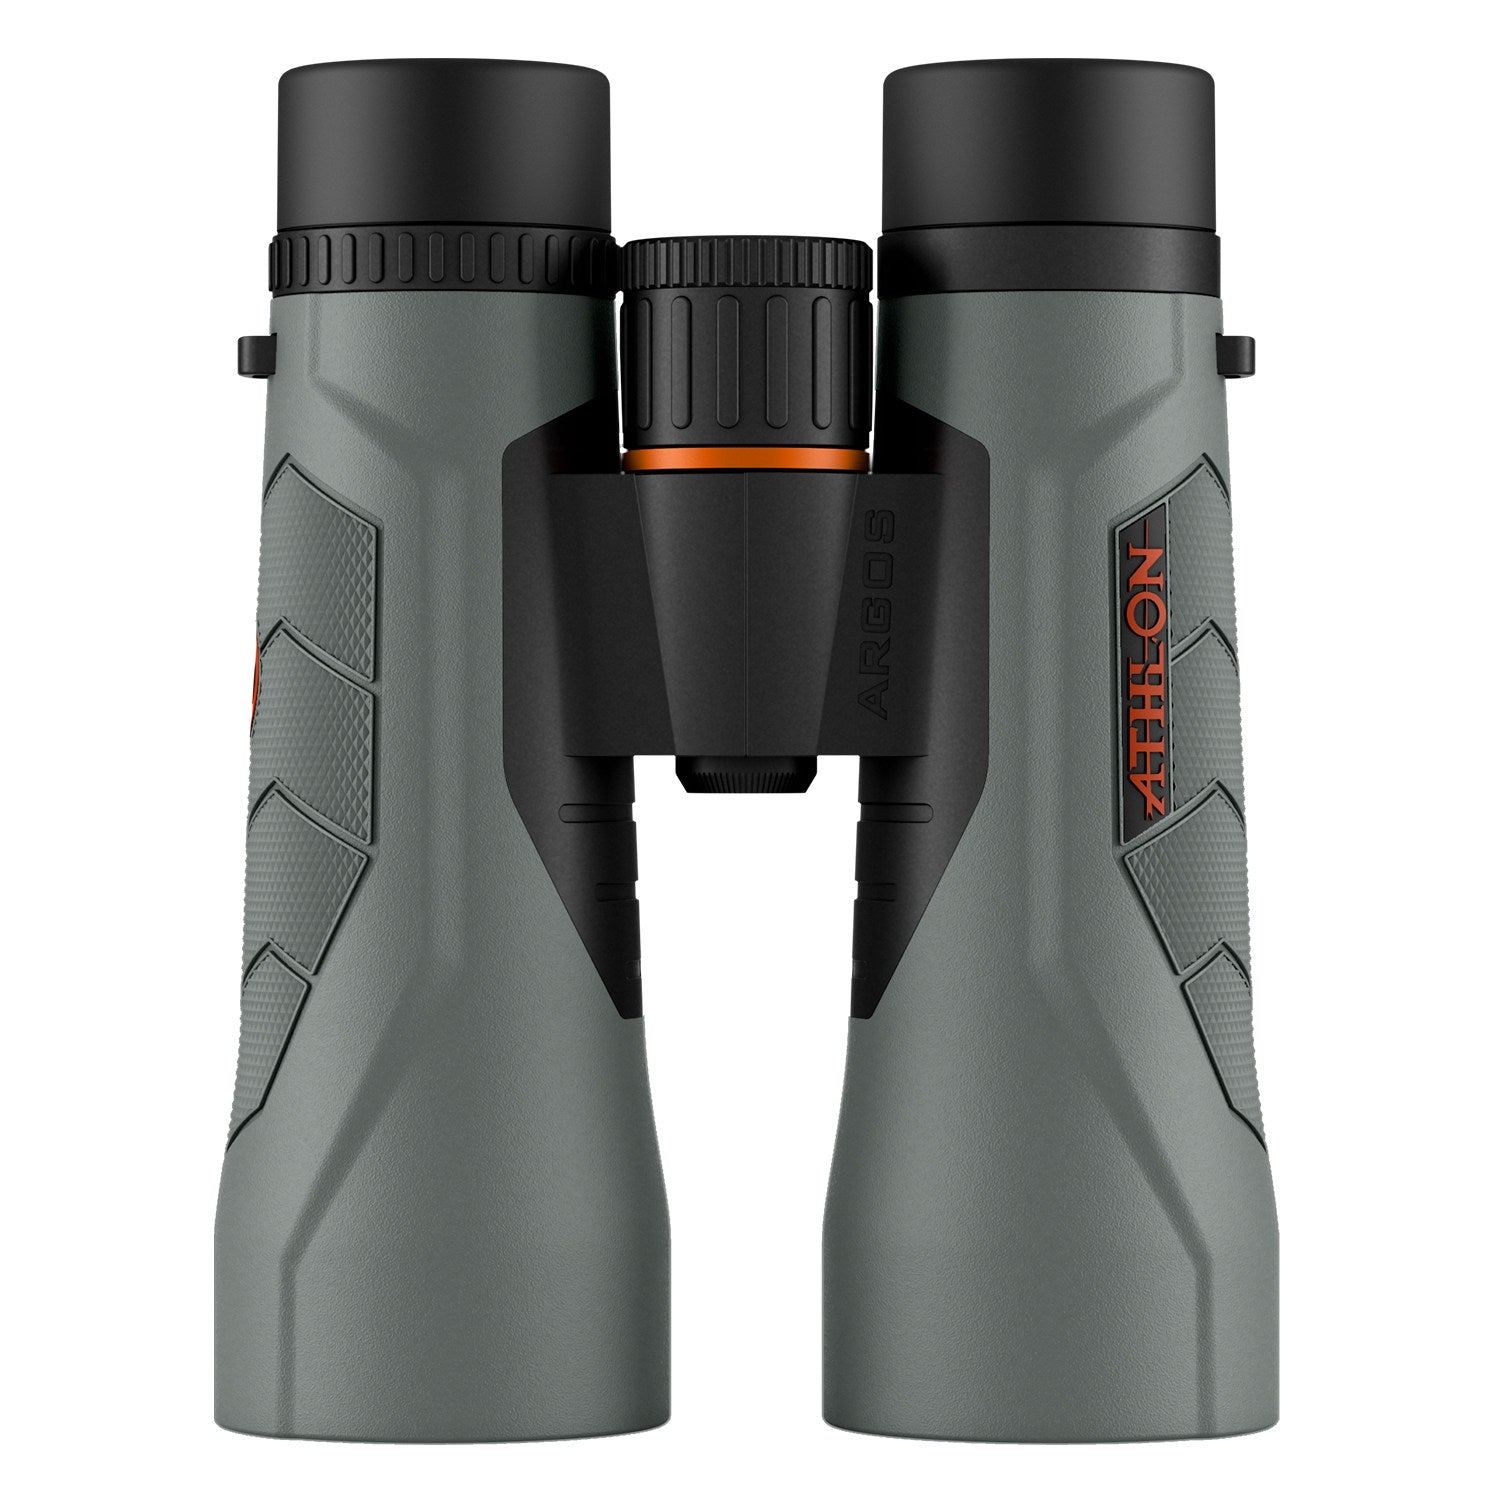 Athlon Argos G2 10×50mm HD Binoculars